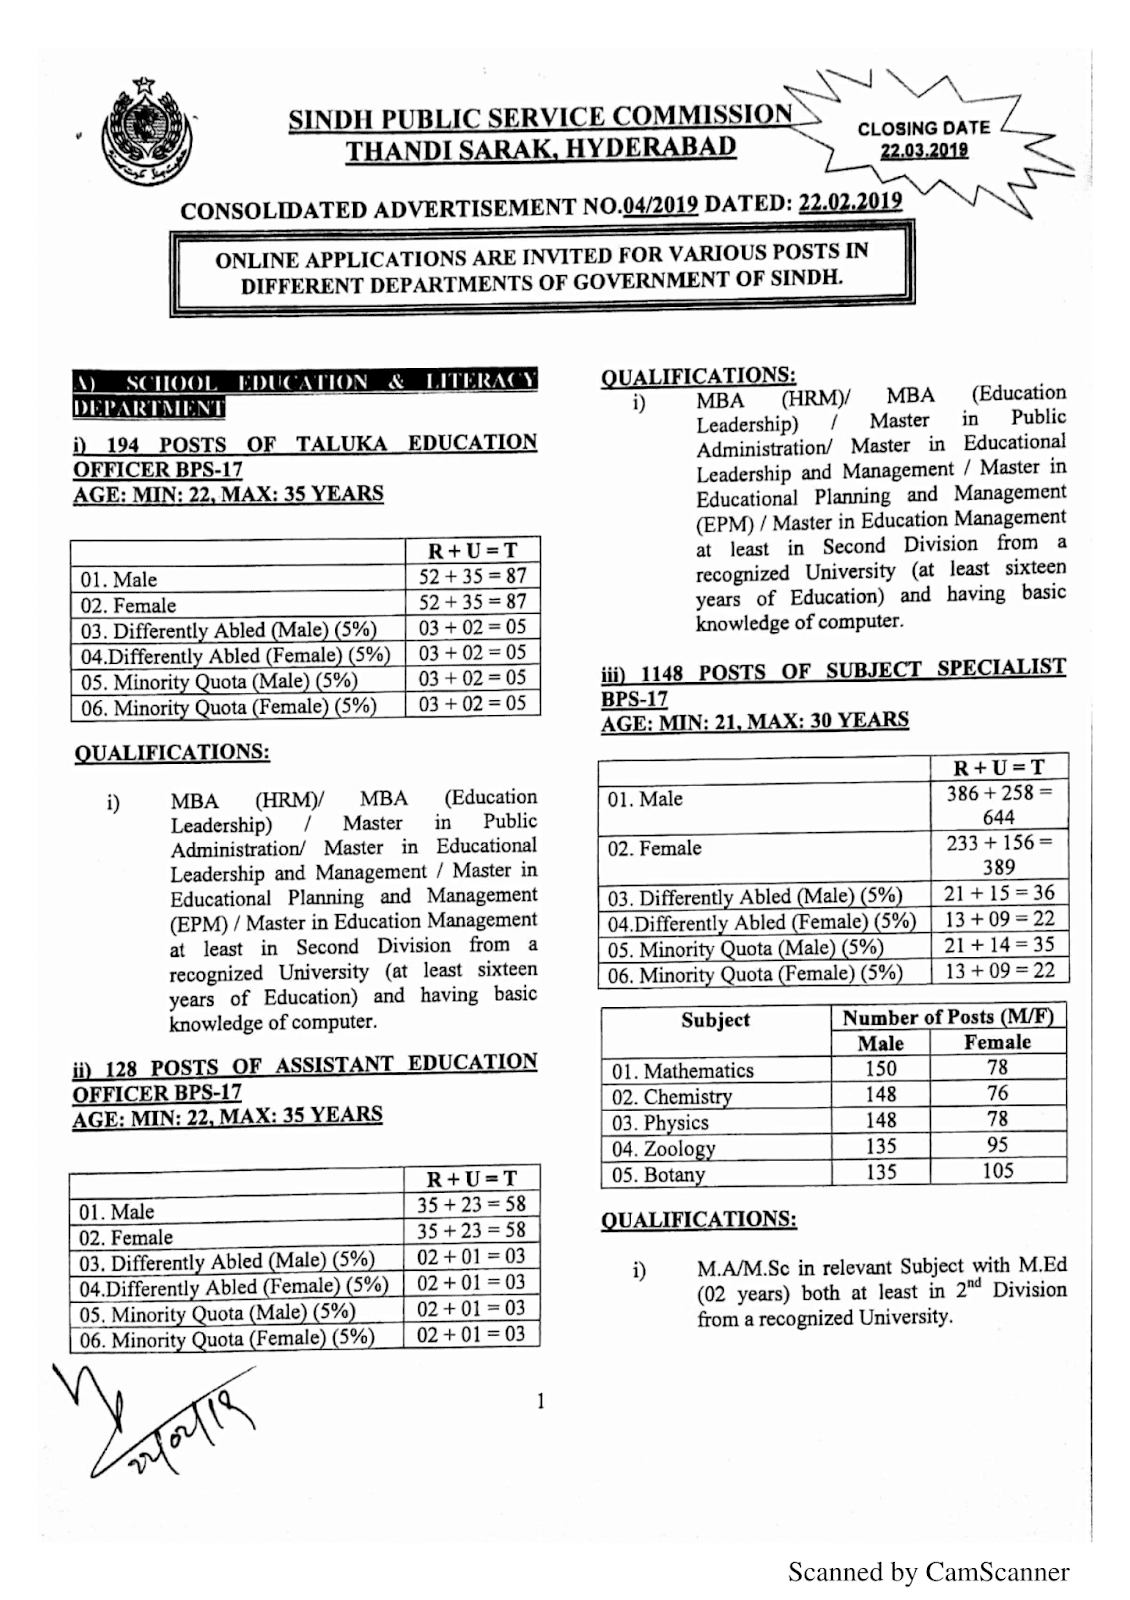 SPSC Advertisement 04/2019 Page No. 1/3